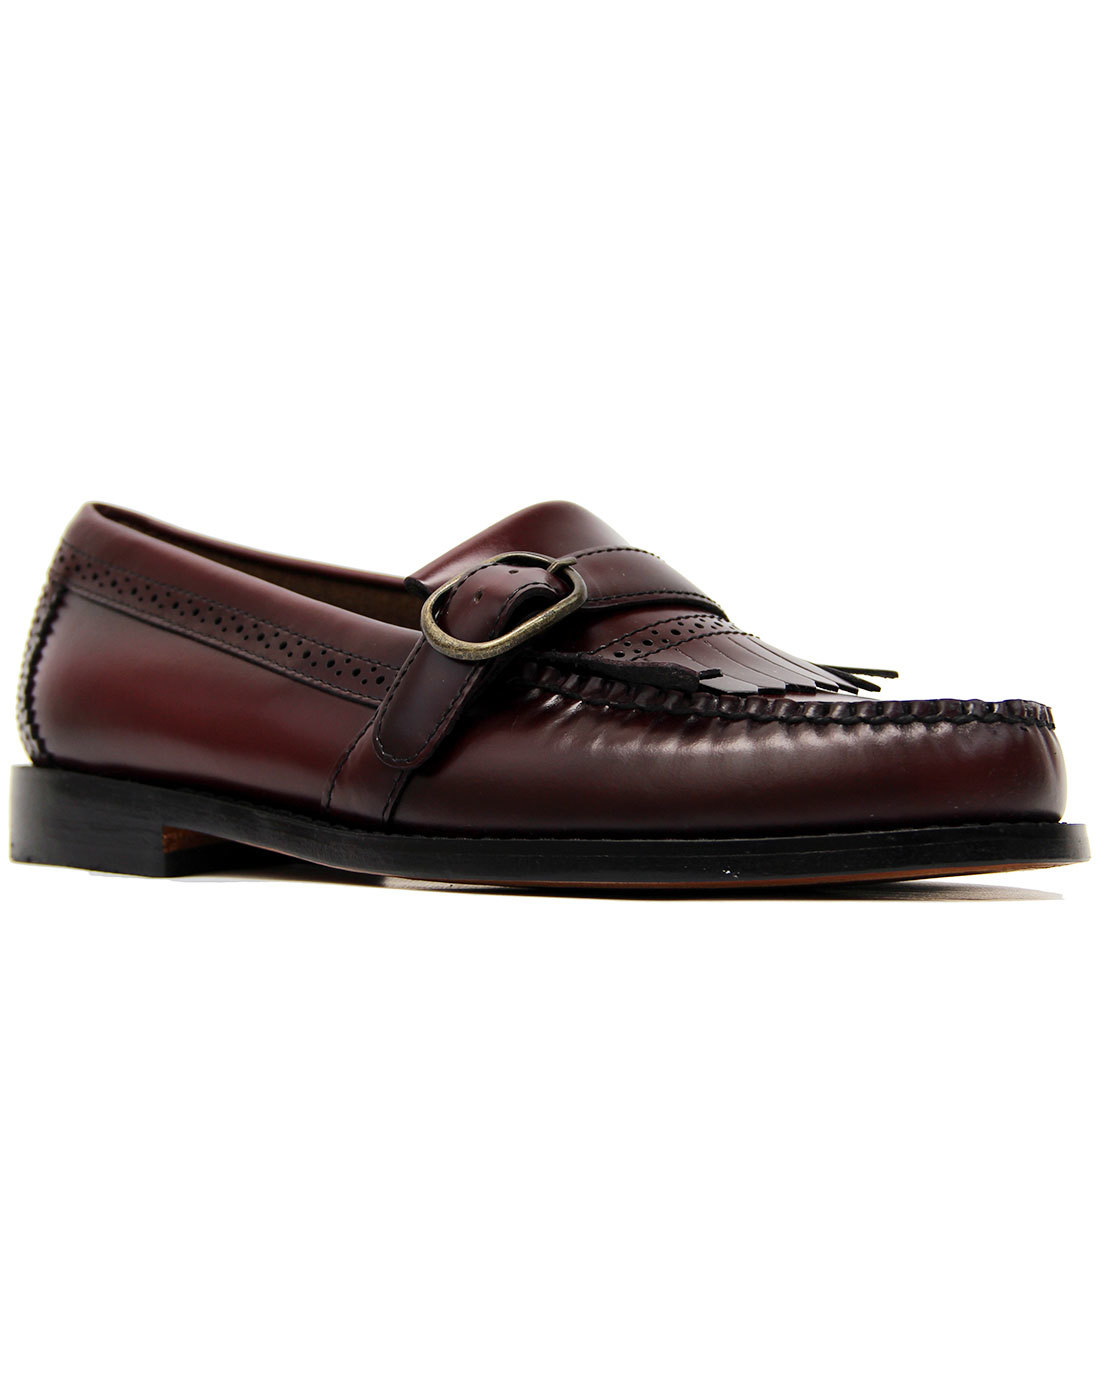 Langley BASS WEEJUNS 60s Mod Buckle Loafers WINE